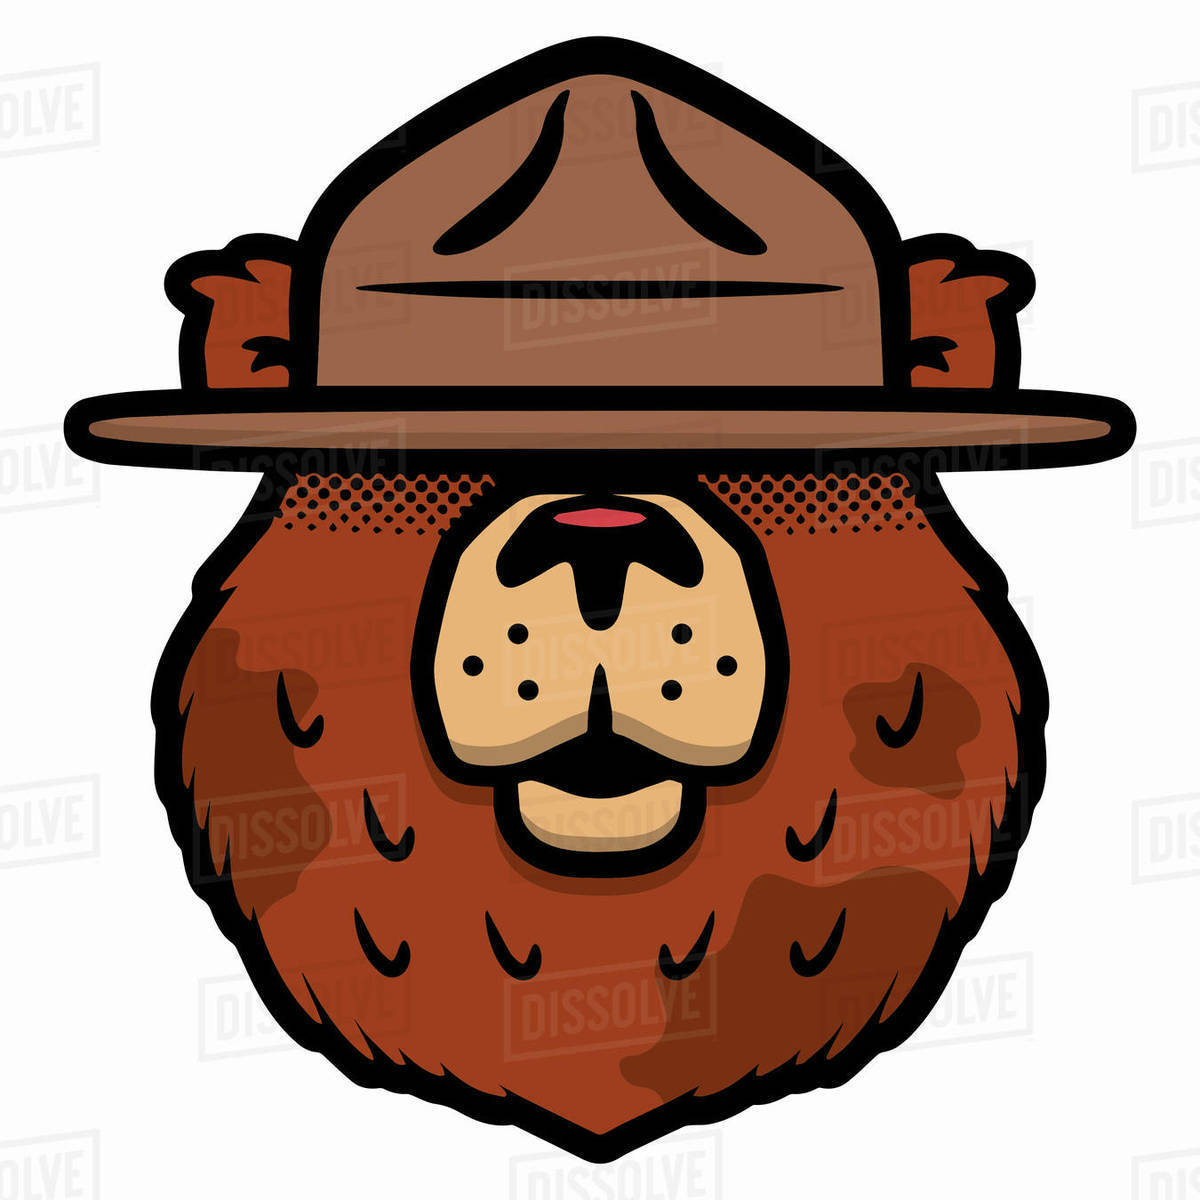 Cartoon illustration of a bear wearing hat against white background Royalty-free stock photo